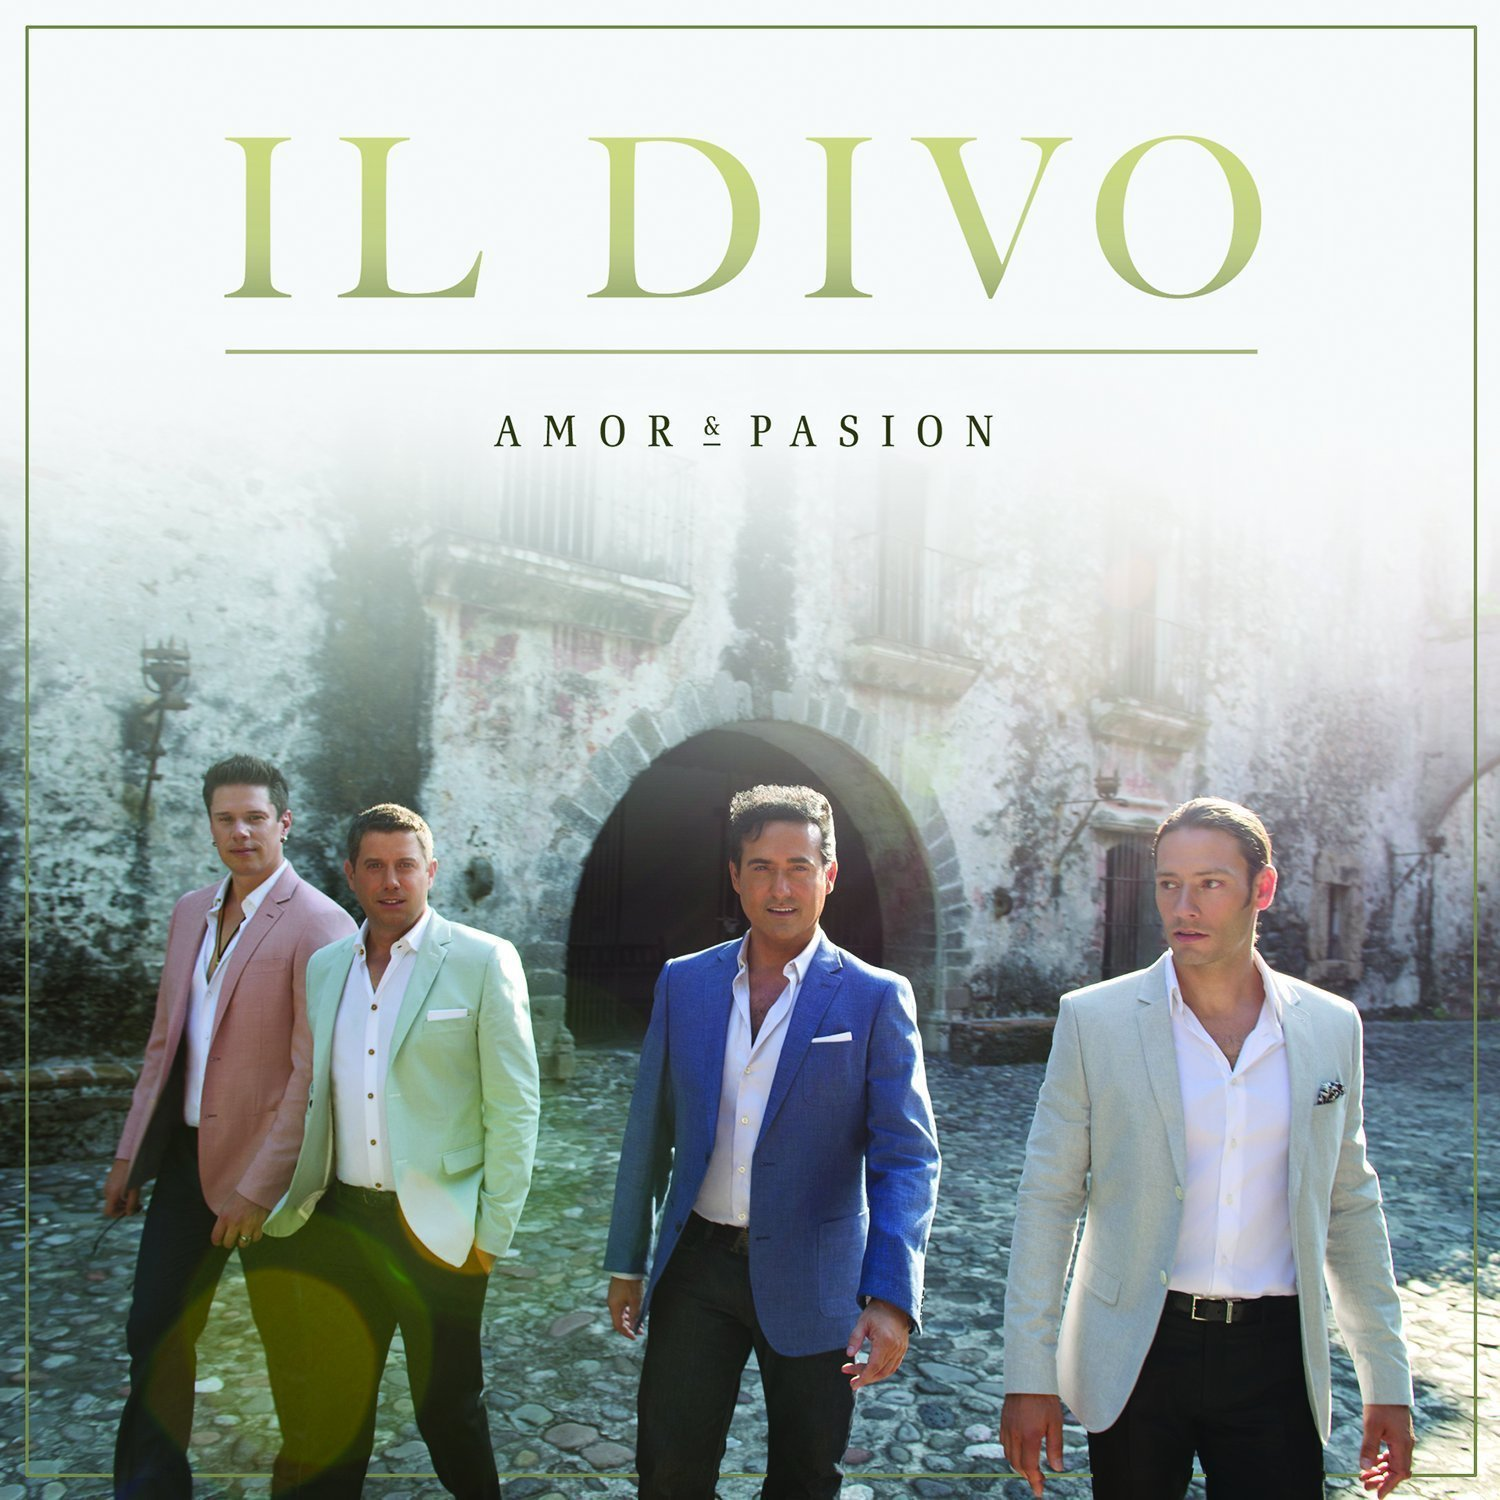 il-divo---amor--pasion-recording-and-mixing-engineer-2015_22067462868_o.jpg